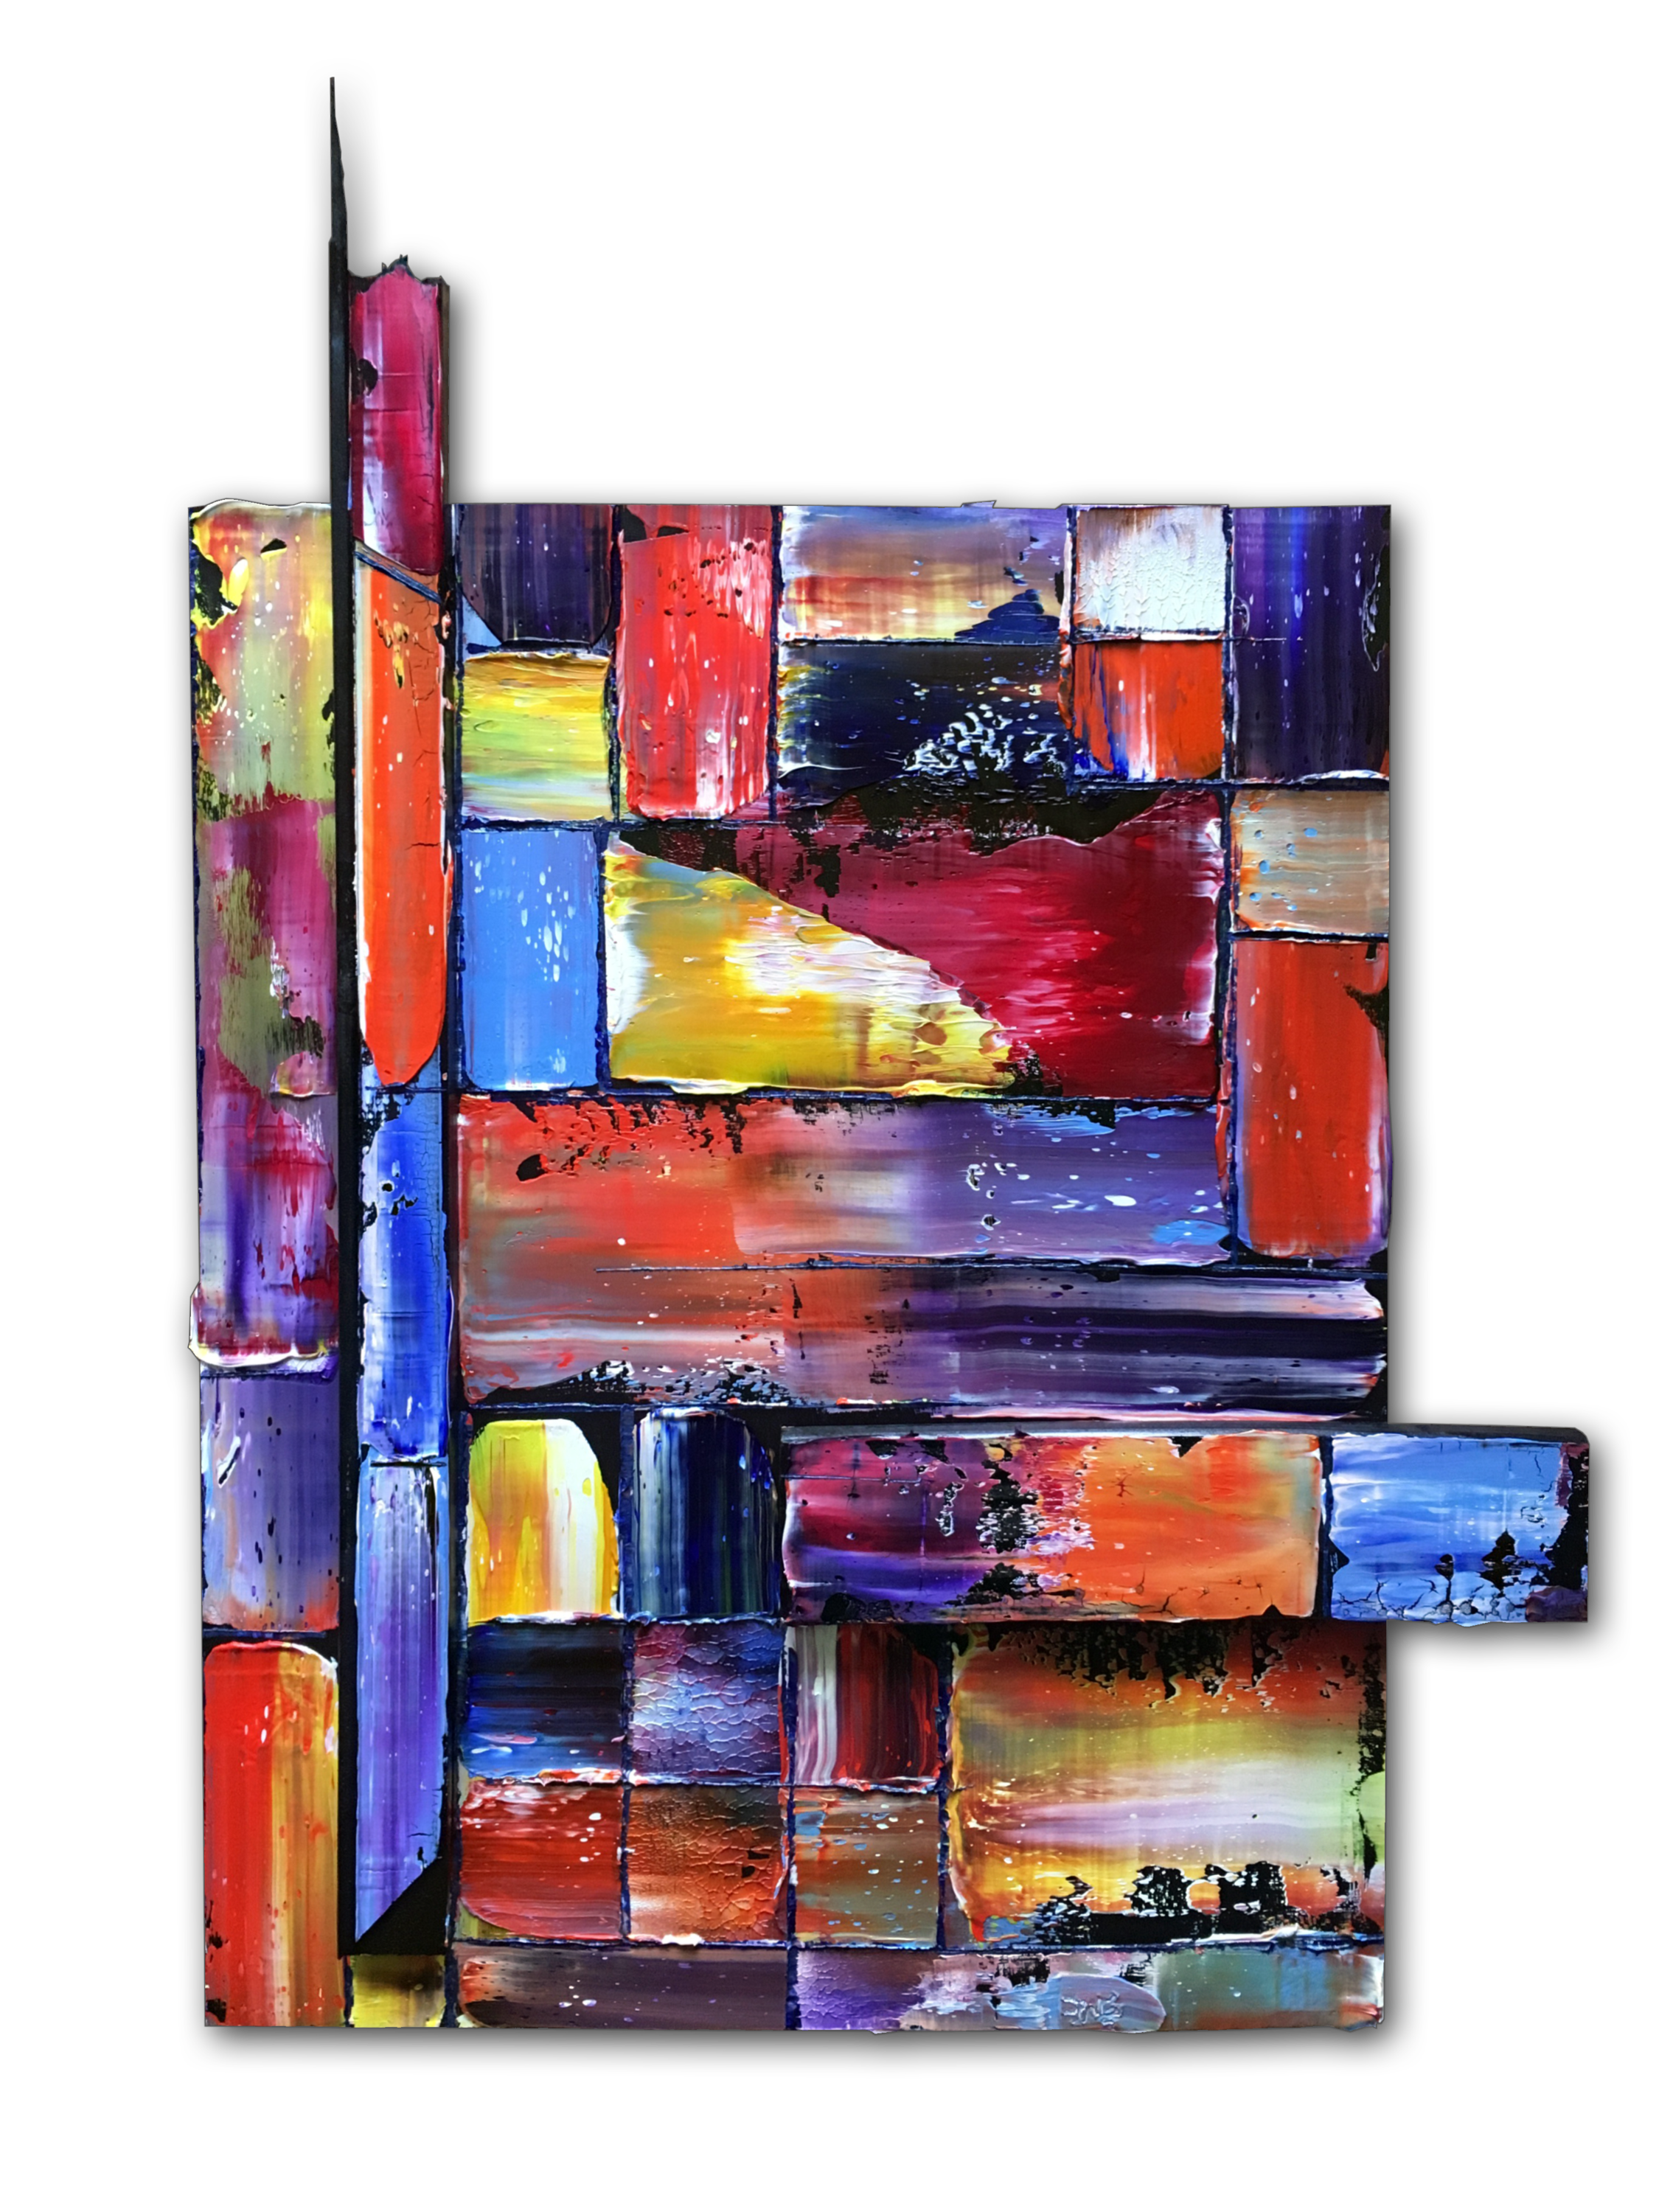 Tetris Assembled Sculptural Abstract Painting Tetris Art Painting Abstract Painting